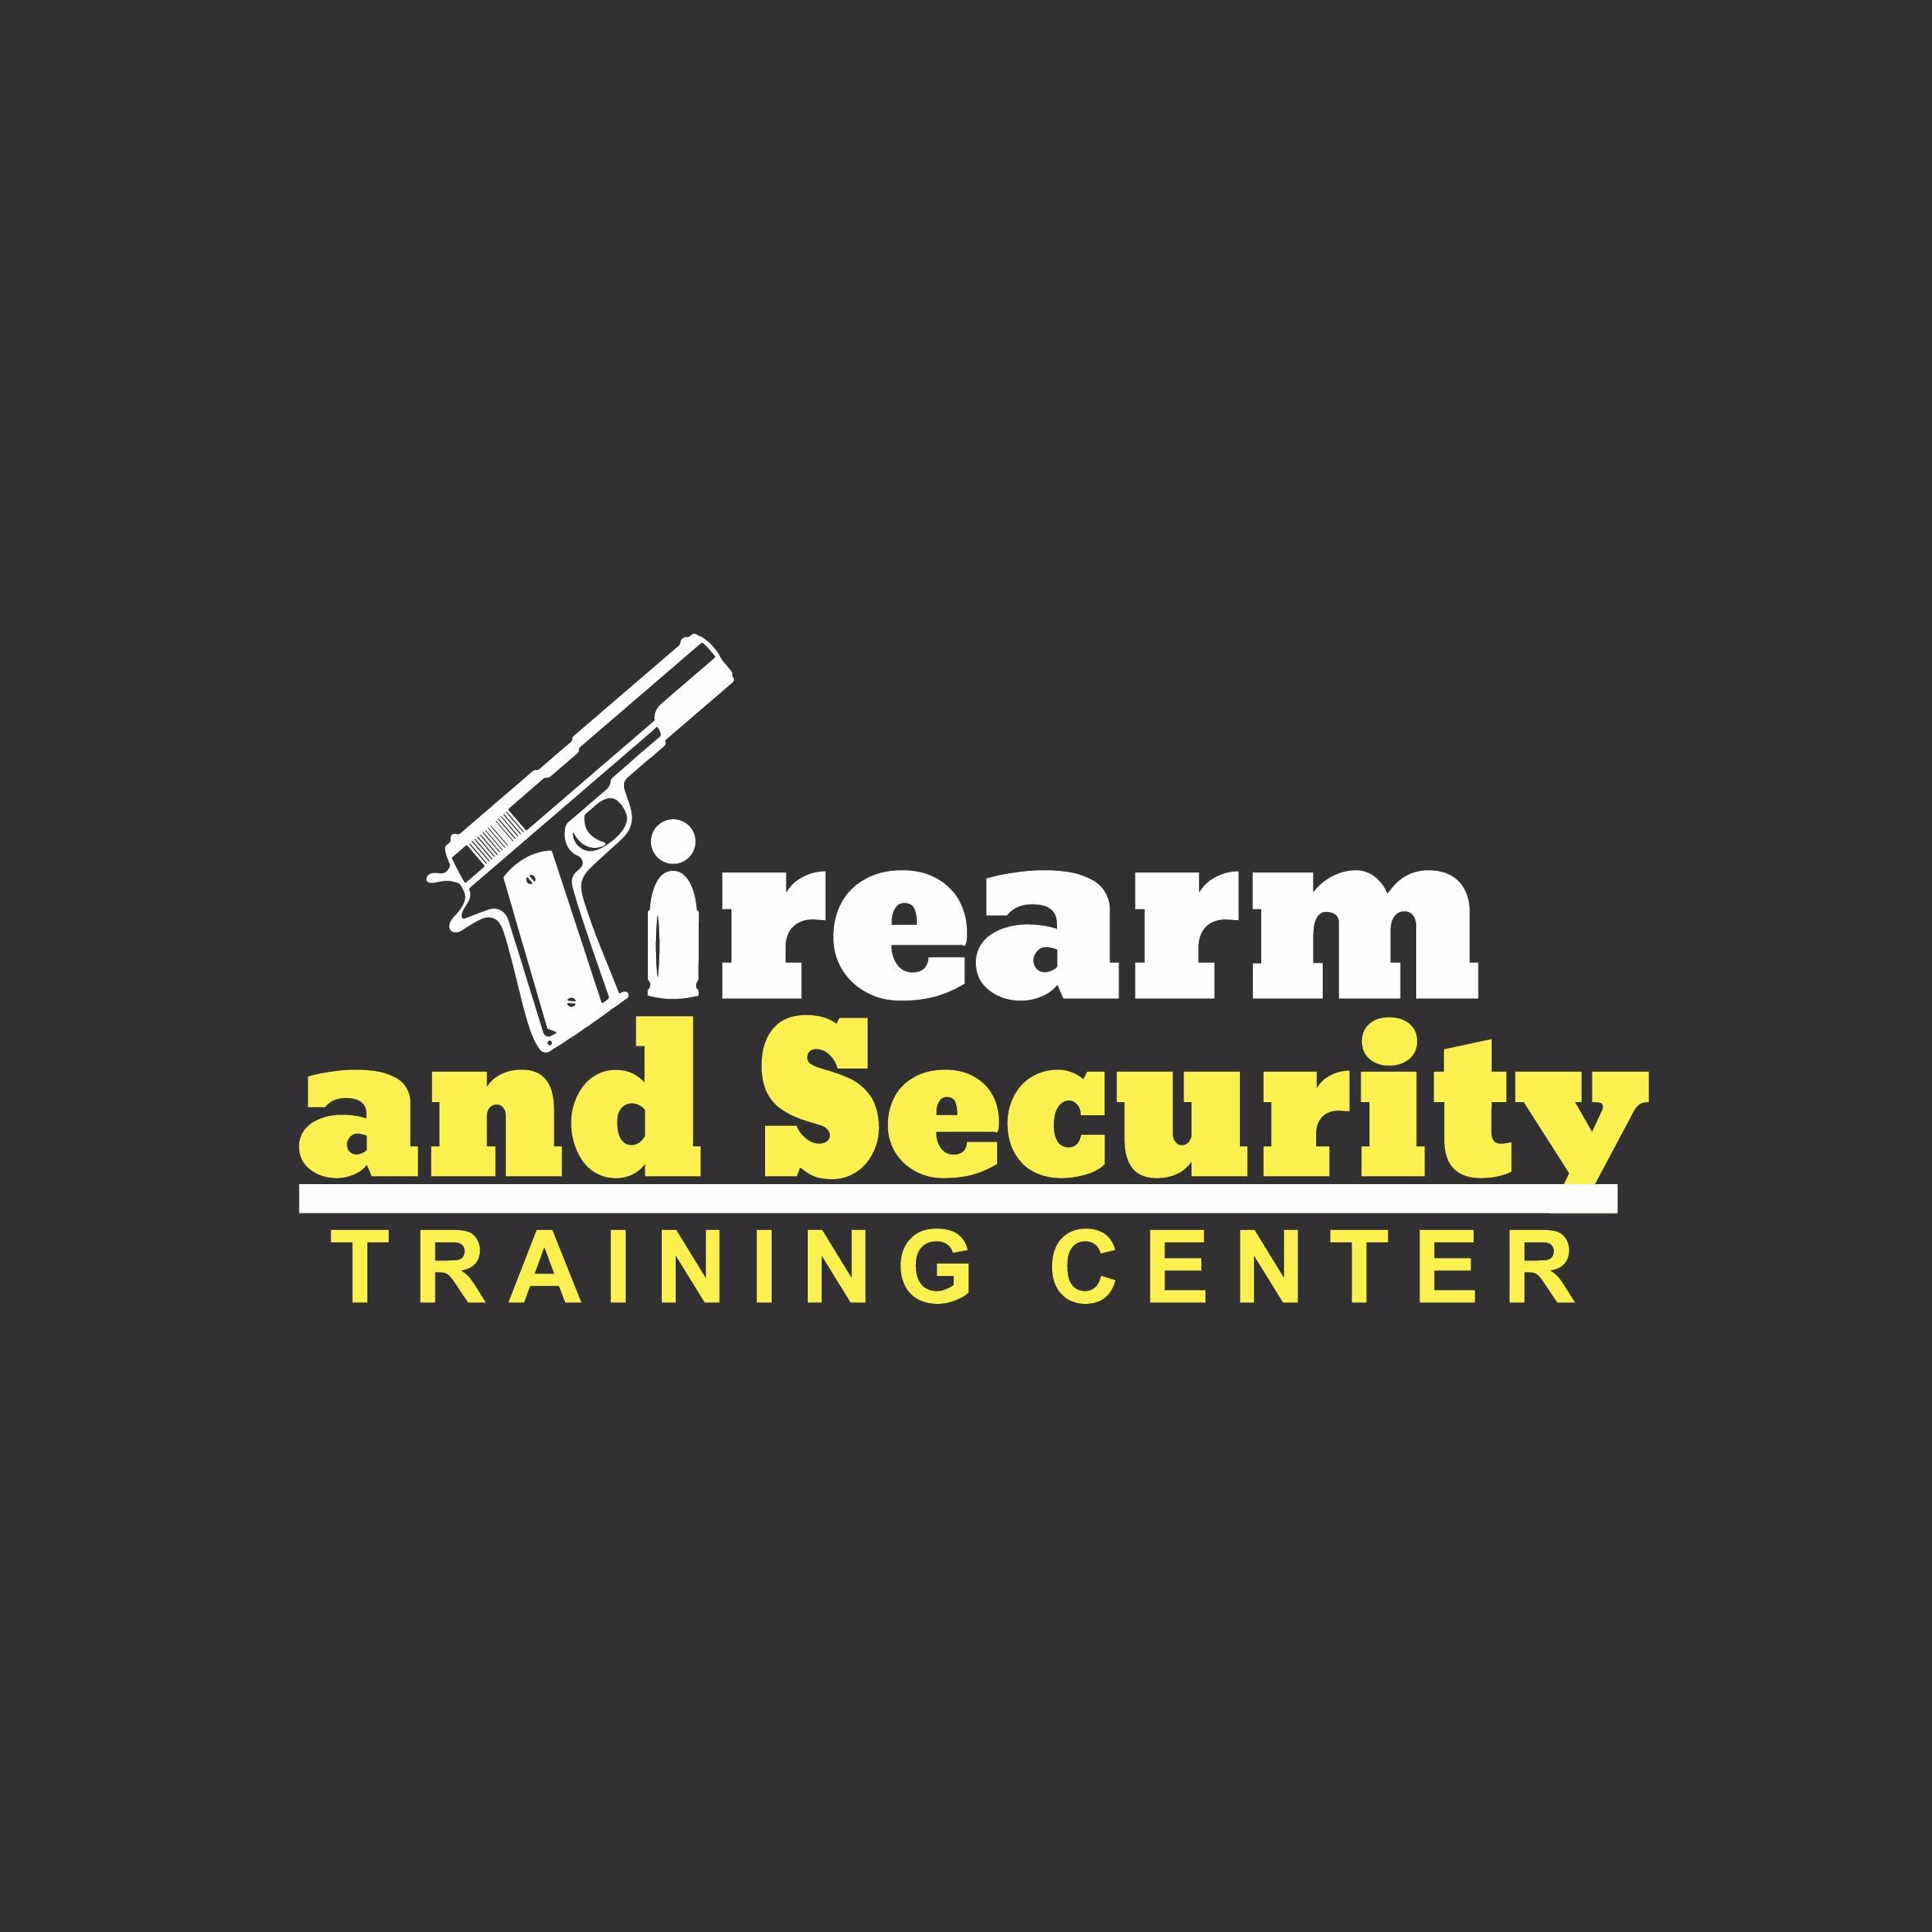 Firearm and Security Training Center